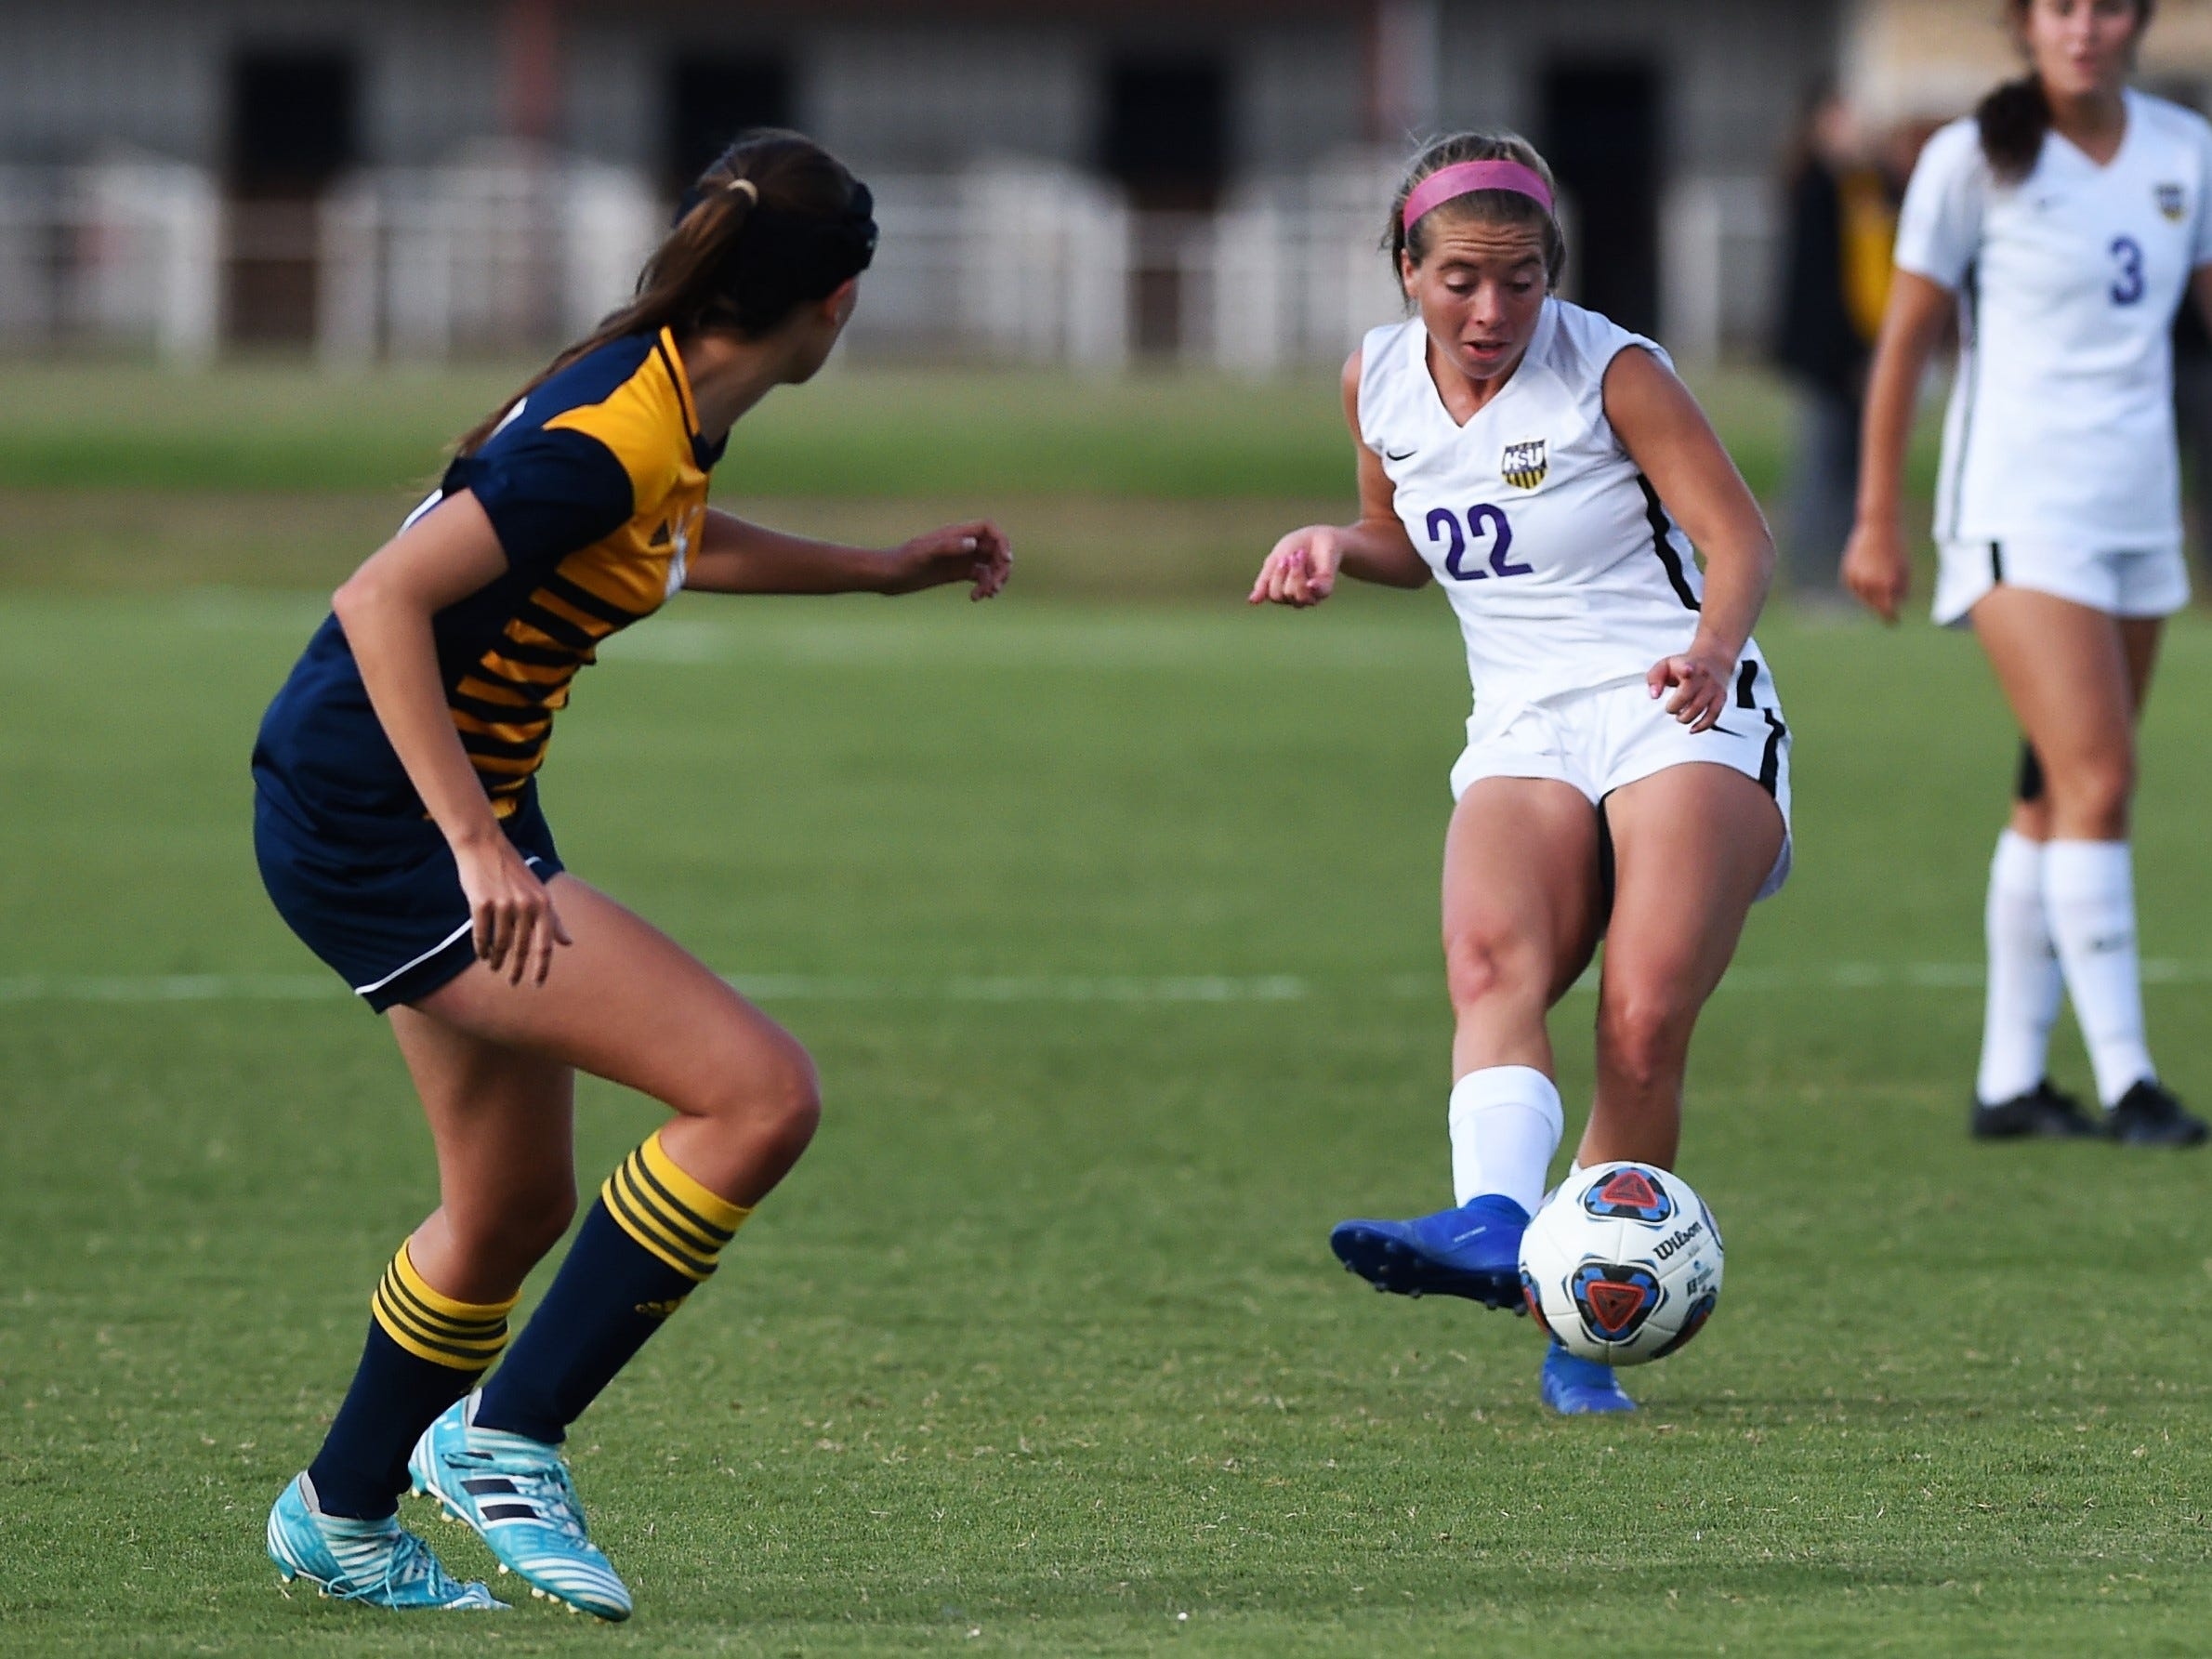 Hardin-Simmons defender Kendell Groom (22) passes the ball against Howard Payne at the HSU Soccer Complex on Thursday, Oct. 11, 2018. The Cowgirls won 4-1.